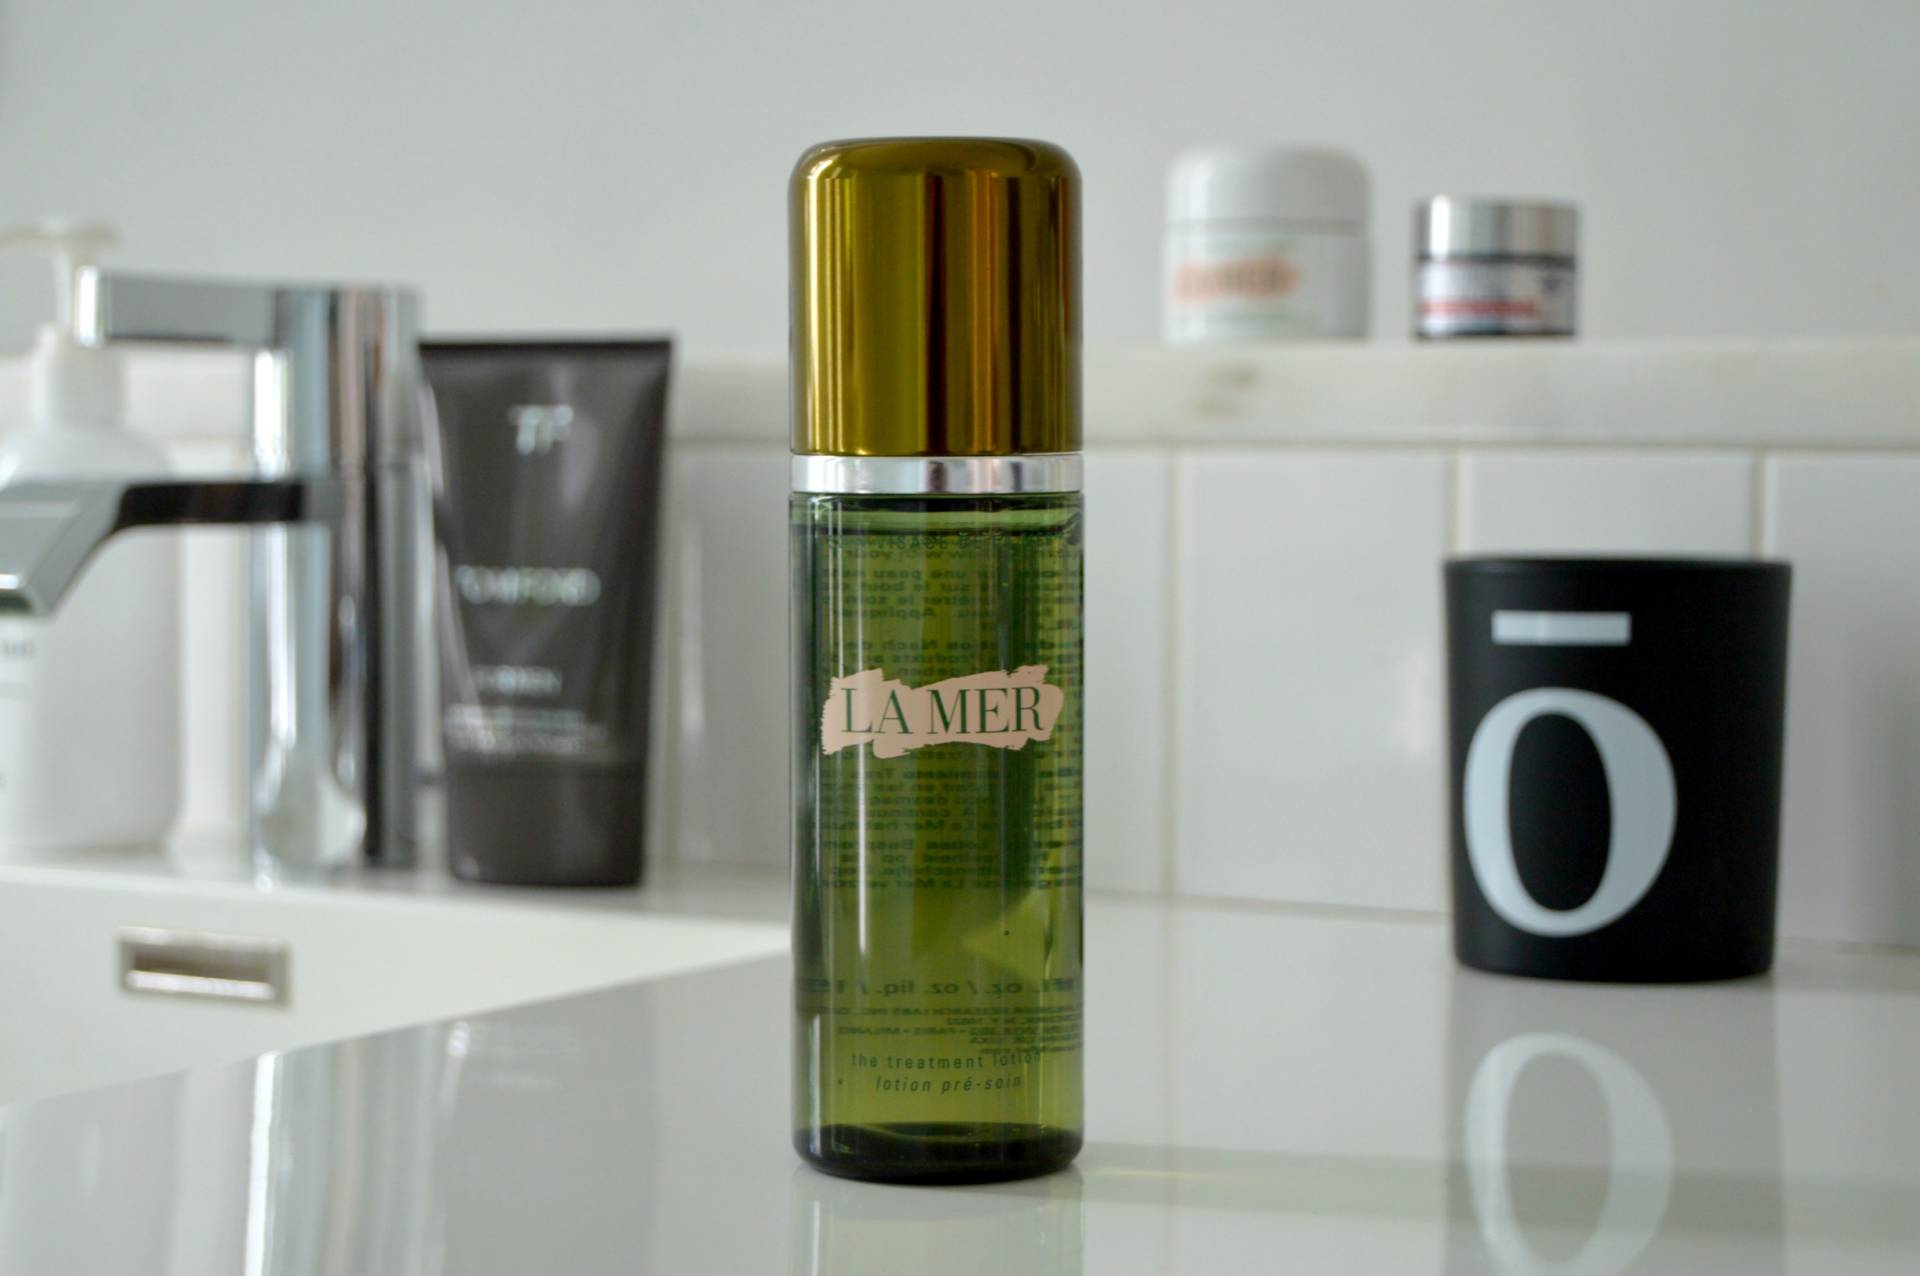 la mer treatment lotion review inhautepursuit neiman marcus mens grooming day